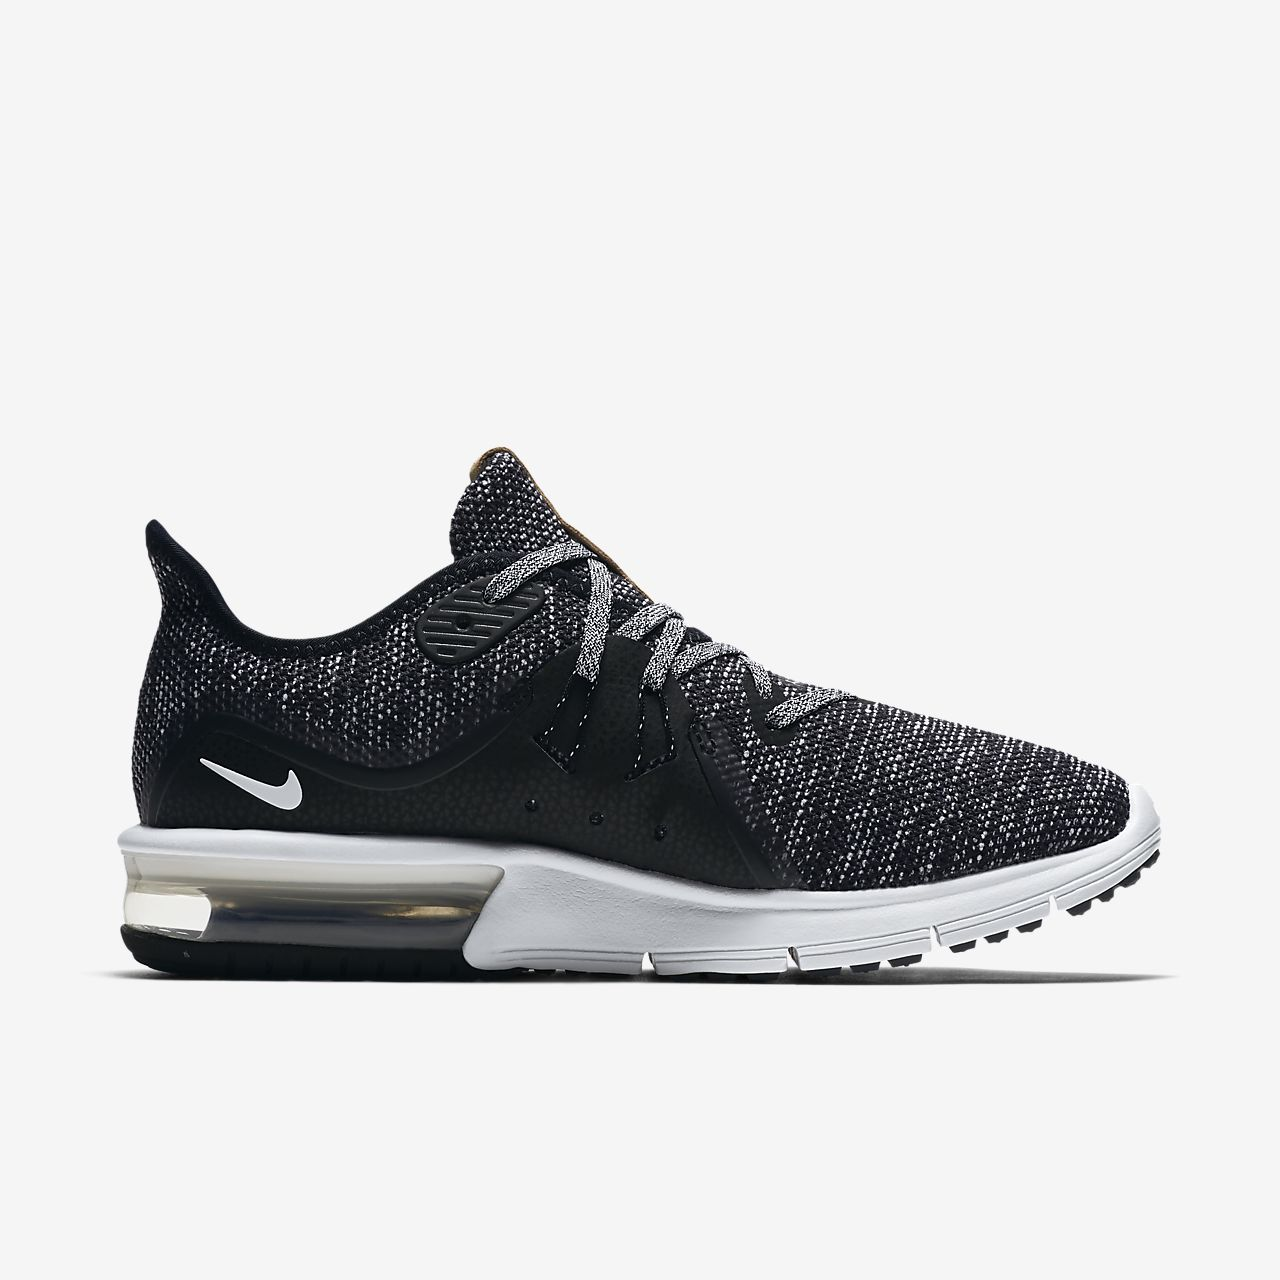 40dc3c711f244 Nike Air Max Sequent 3 Women s Shoe. Nike.com CH